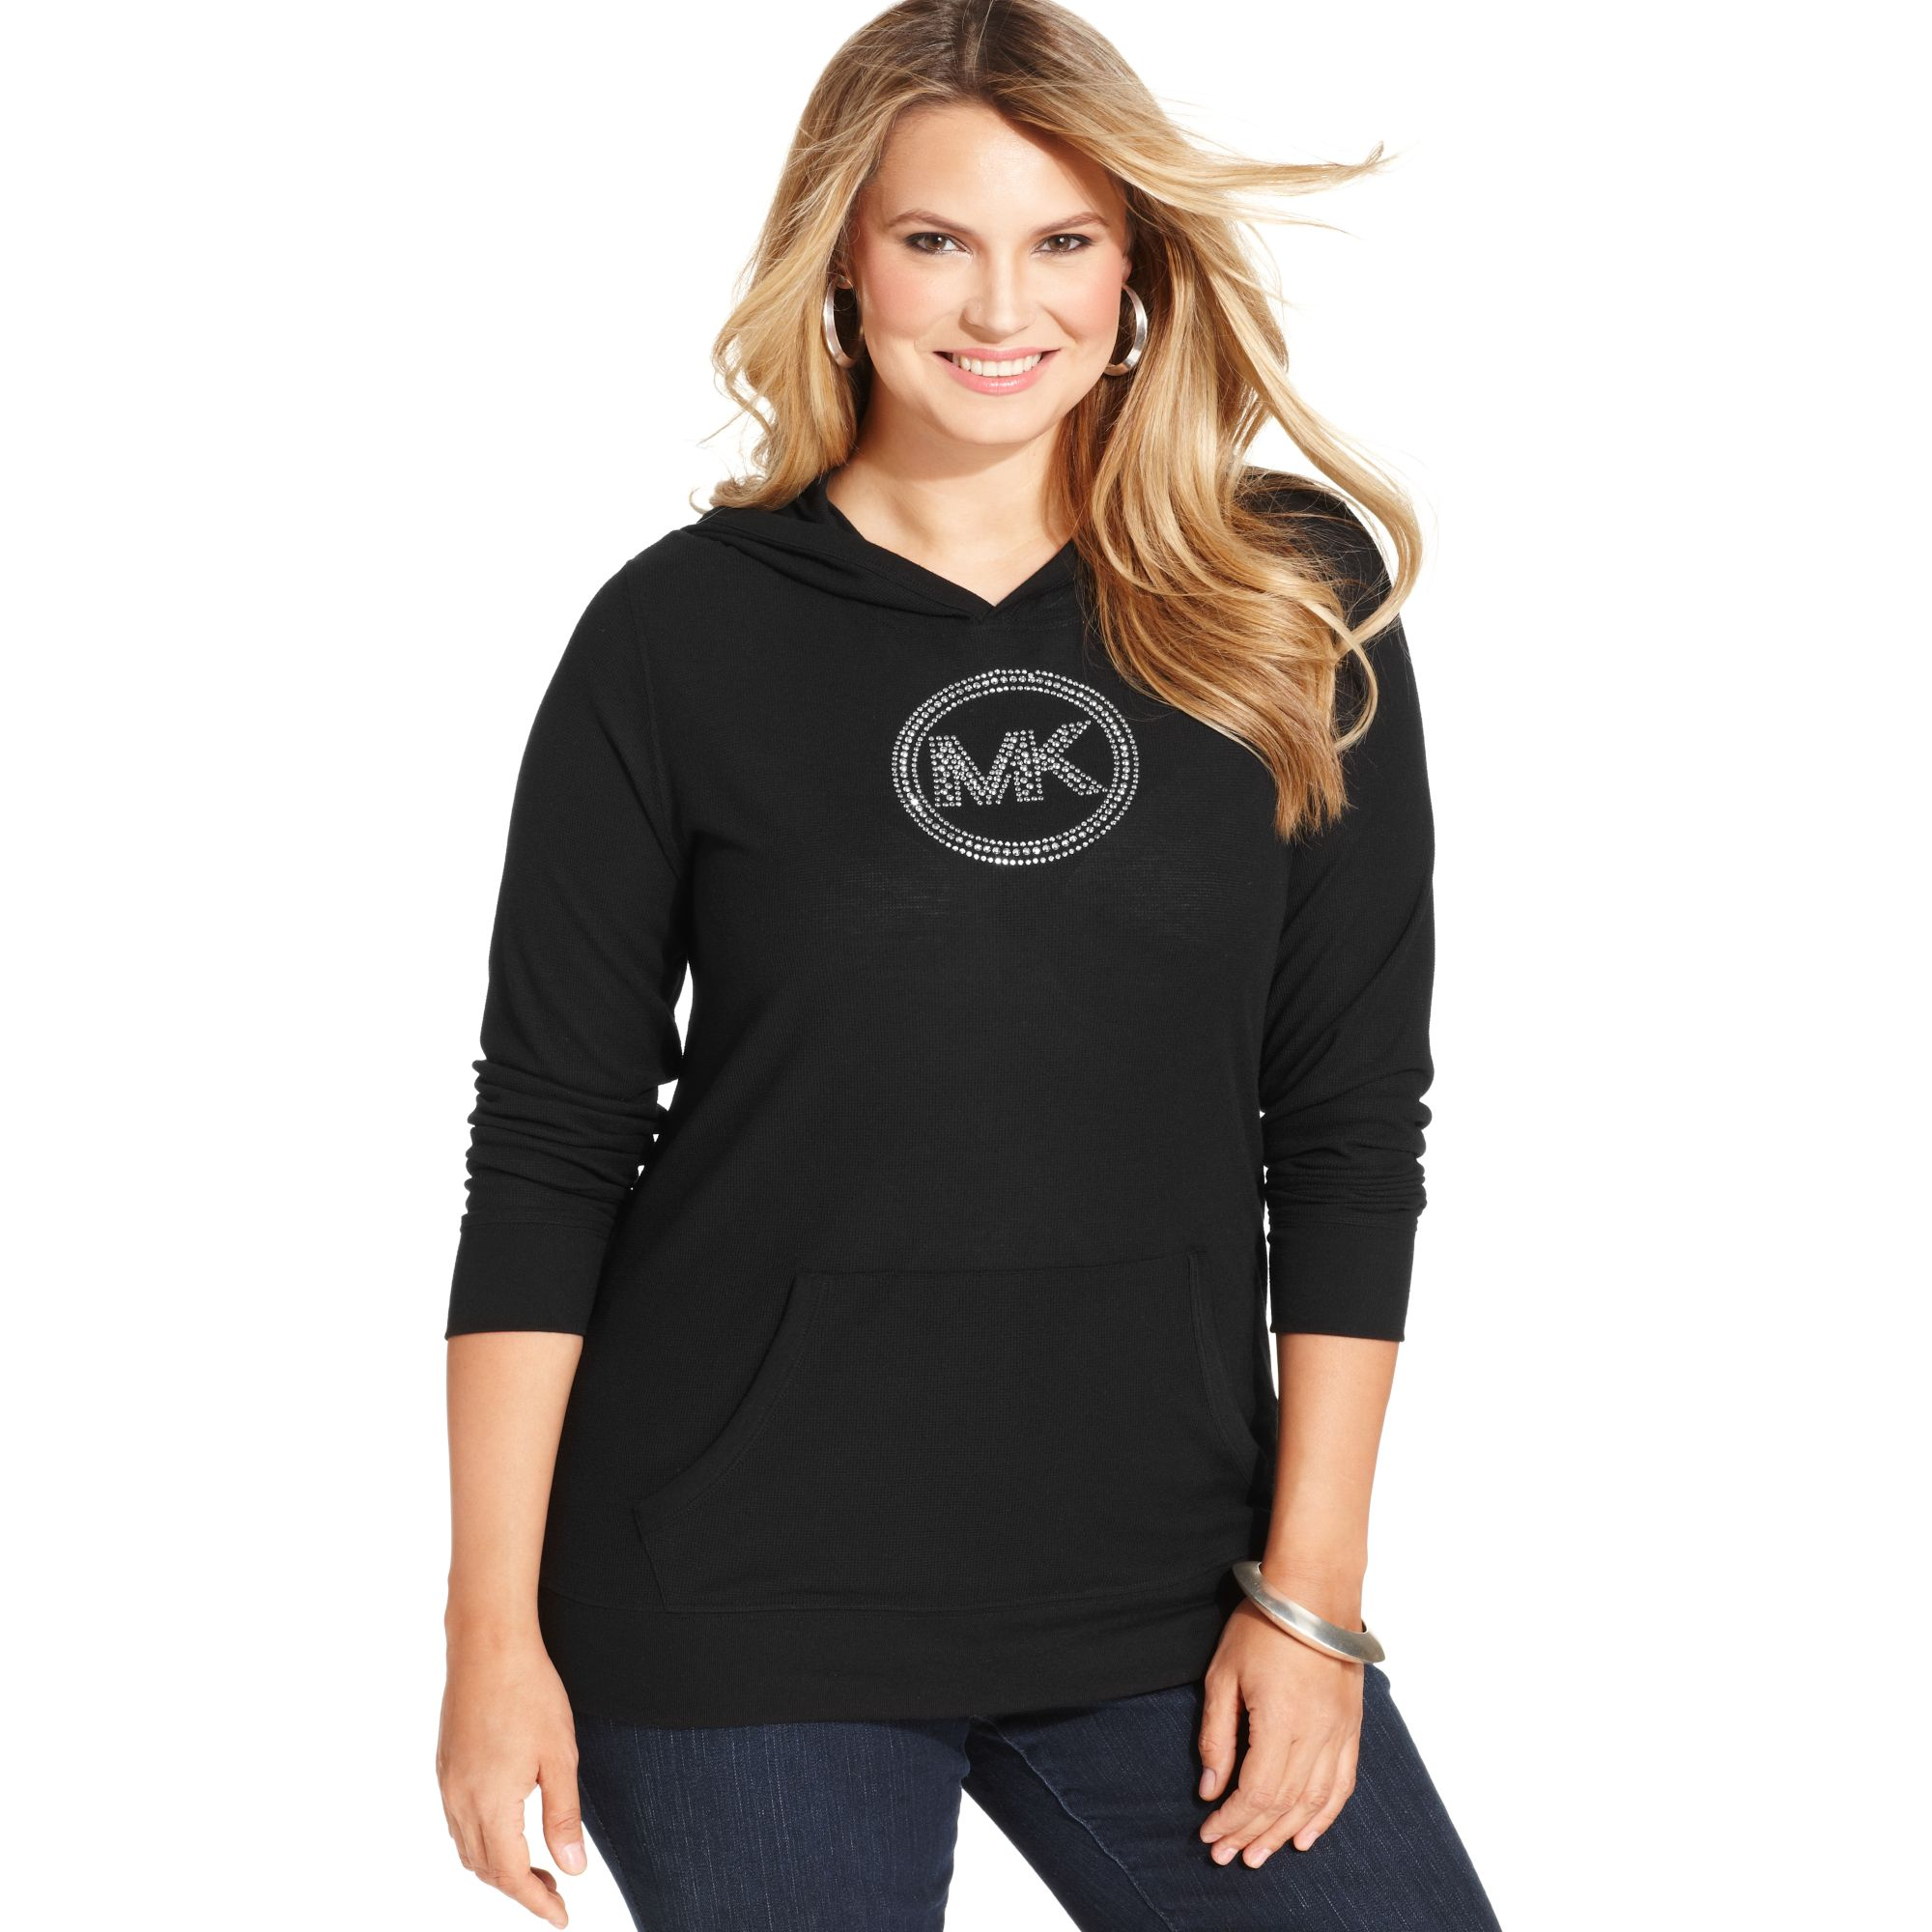 Michael kors clothes for women